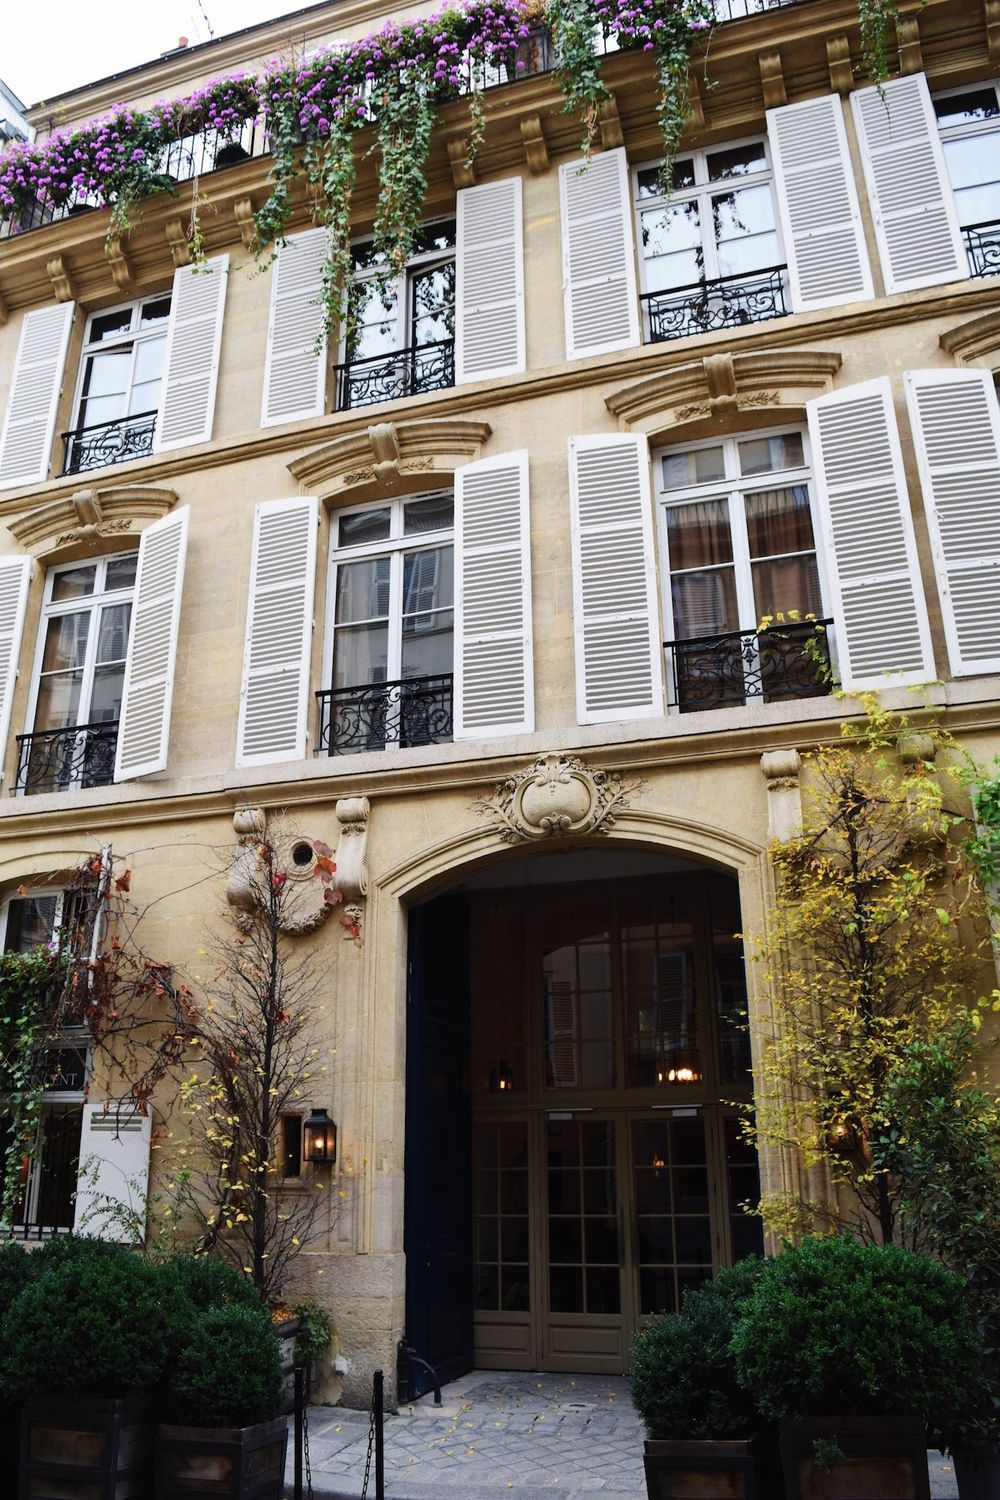 Hôtel Saint Vincent, Paris